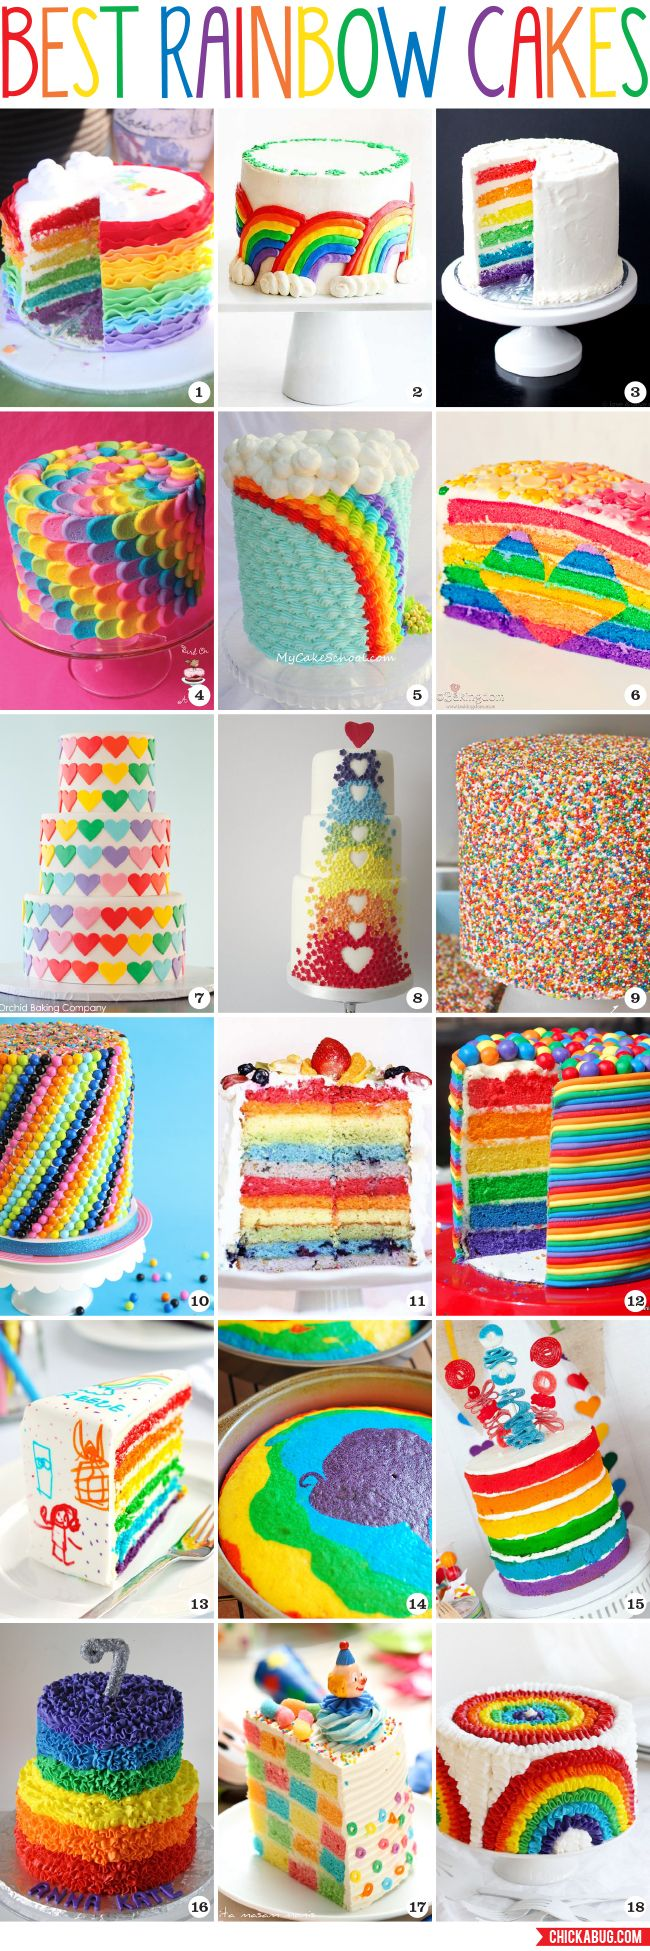 a ton of rainbow cake recipes & decorating ideas